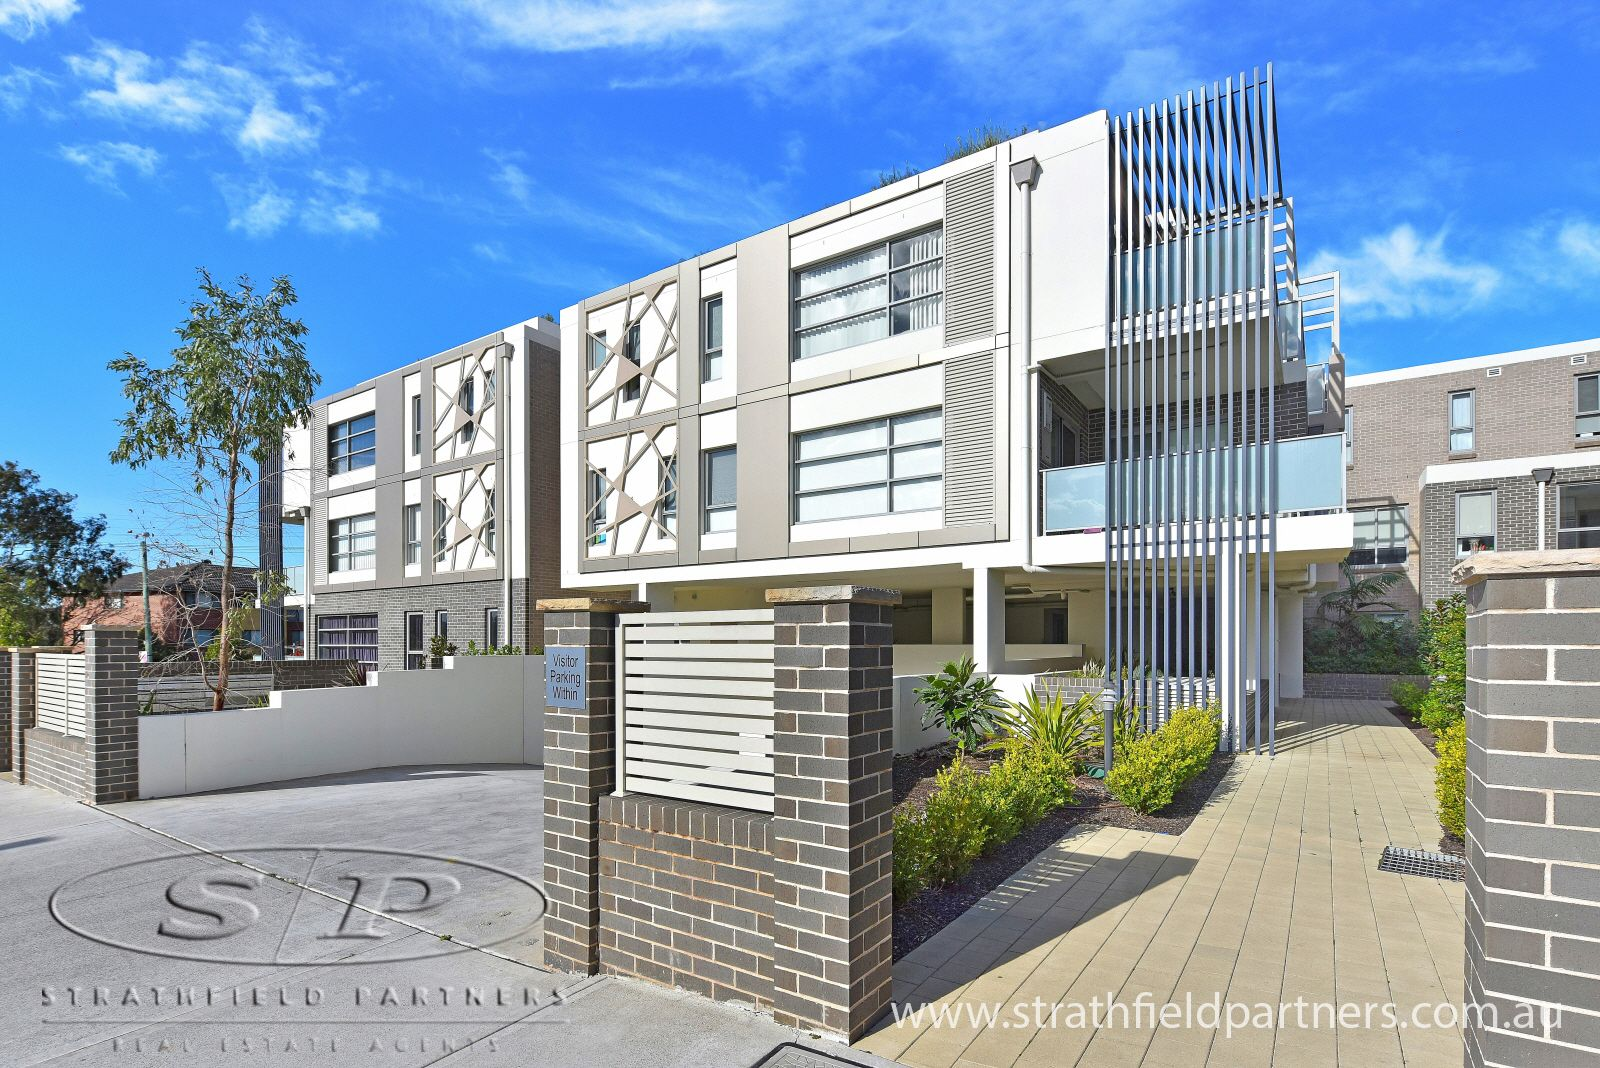 7/548 Liverpool Road, Strathfield South NSW 2136, Image 1